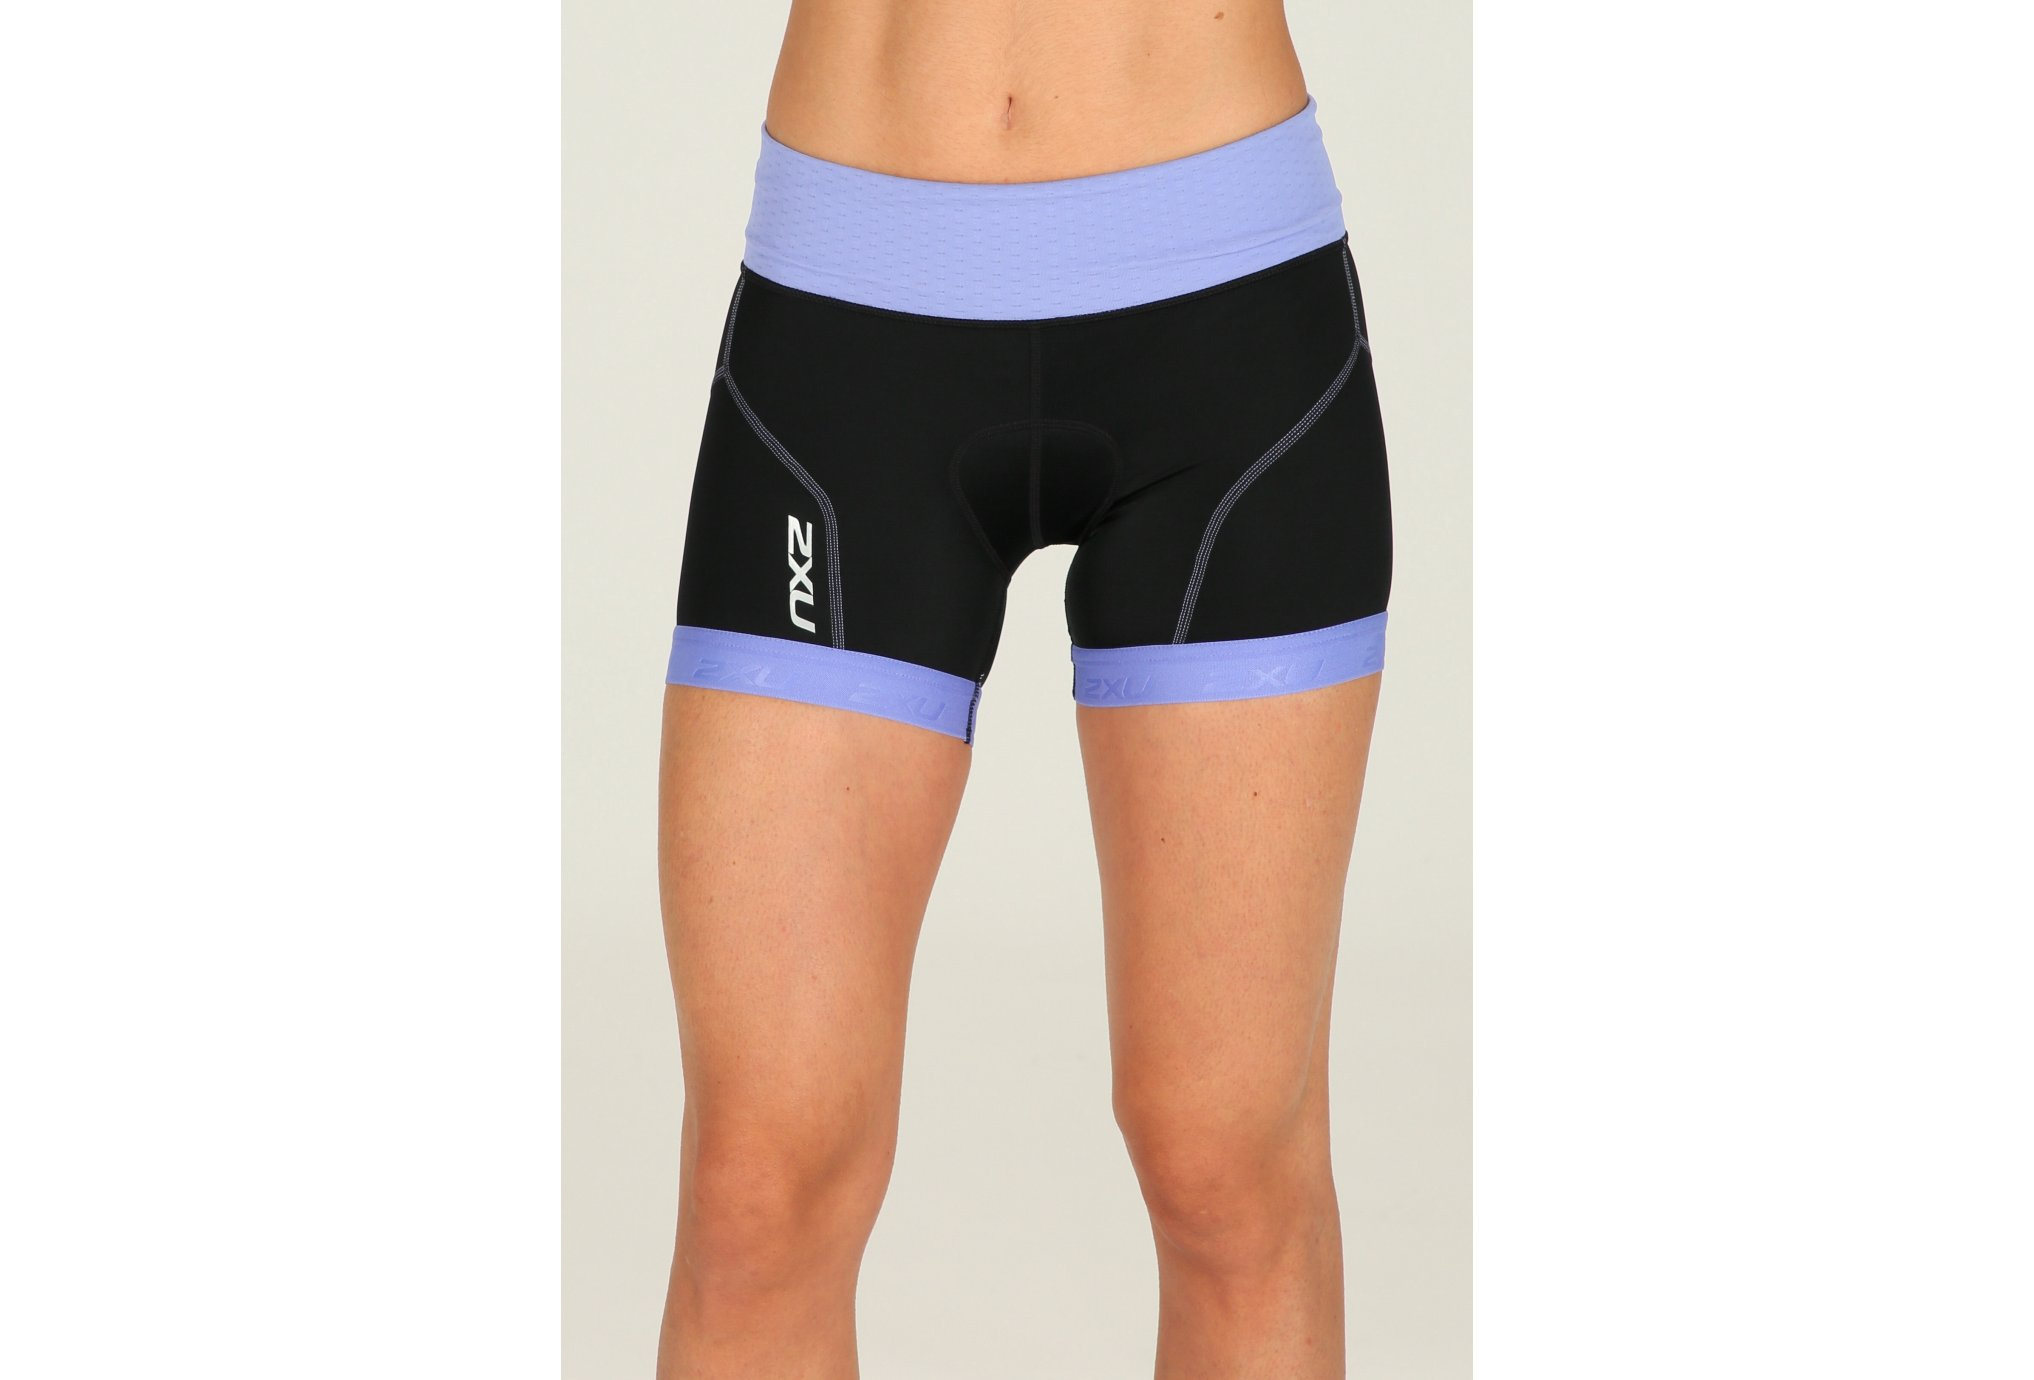 2xu Cuissard court perform tri w vêtement running femme